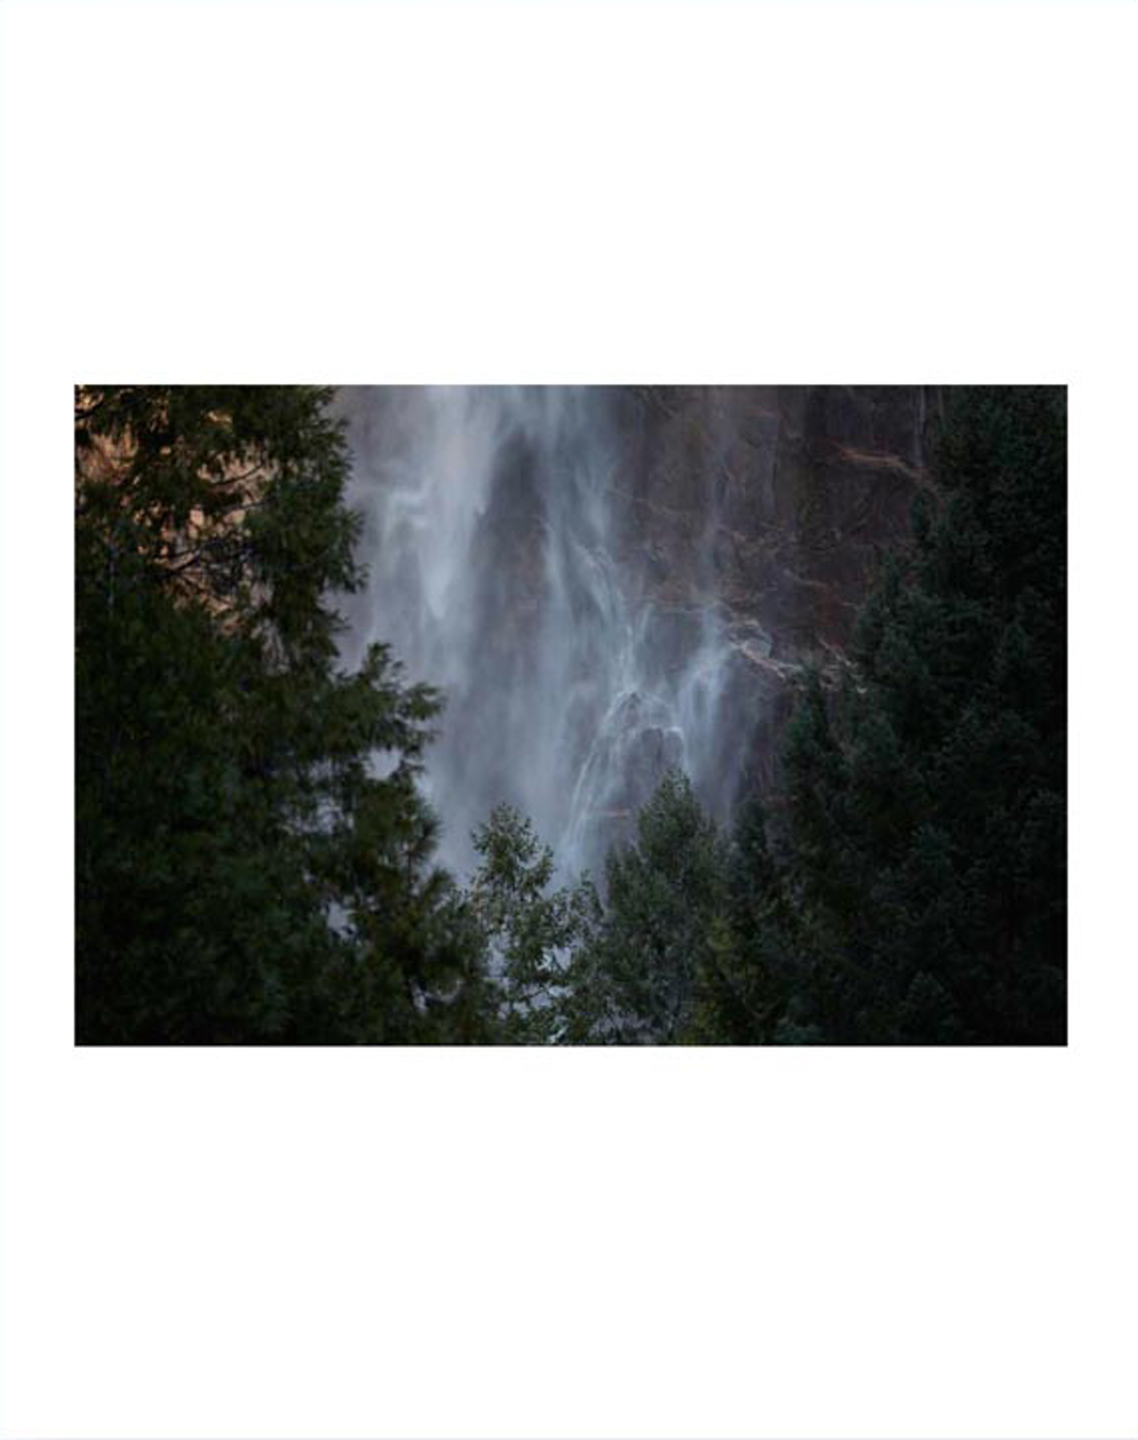 NZ Library #4: Catherine Opie: Yosemite, Special Limited Edition (with Type-C Print) (NZ Library - Set Four) [SIGNED]